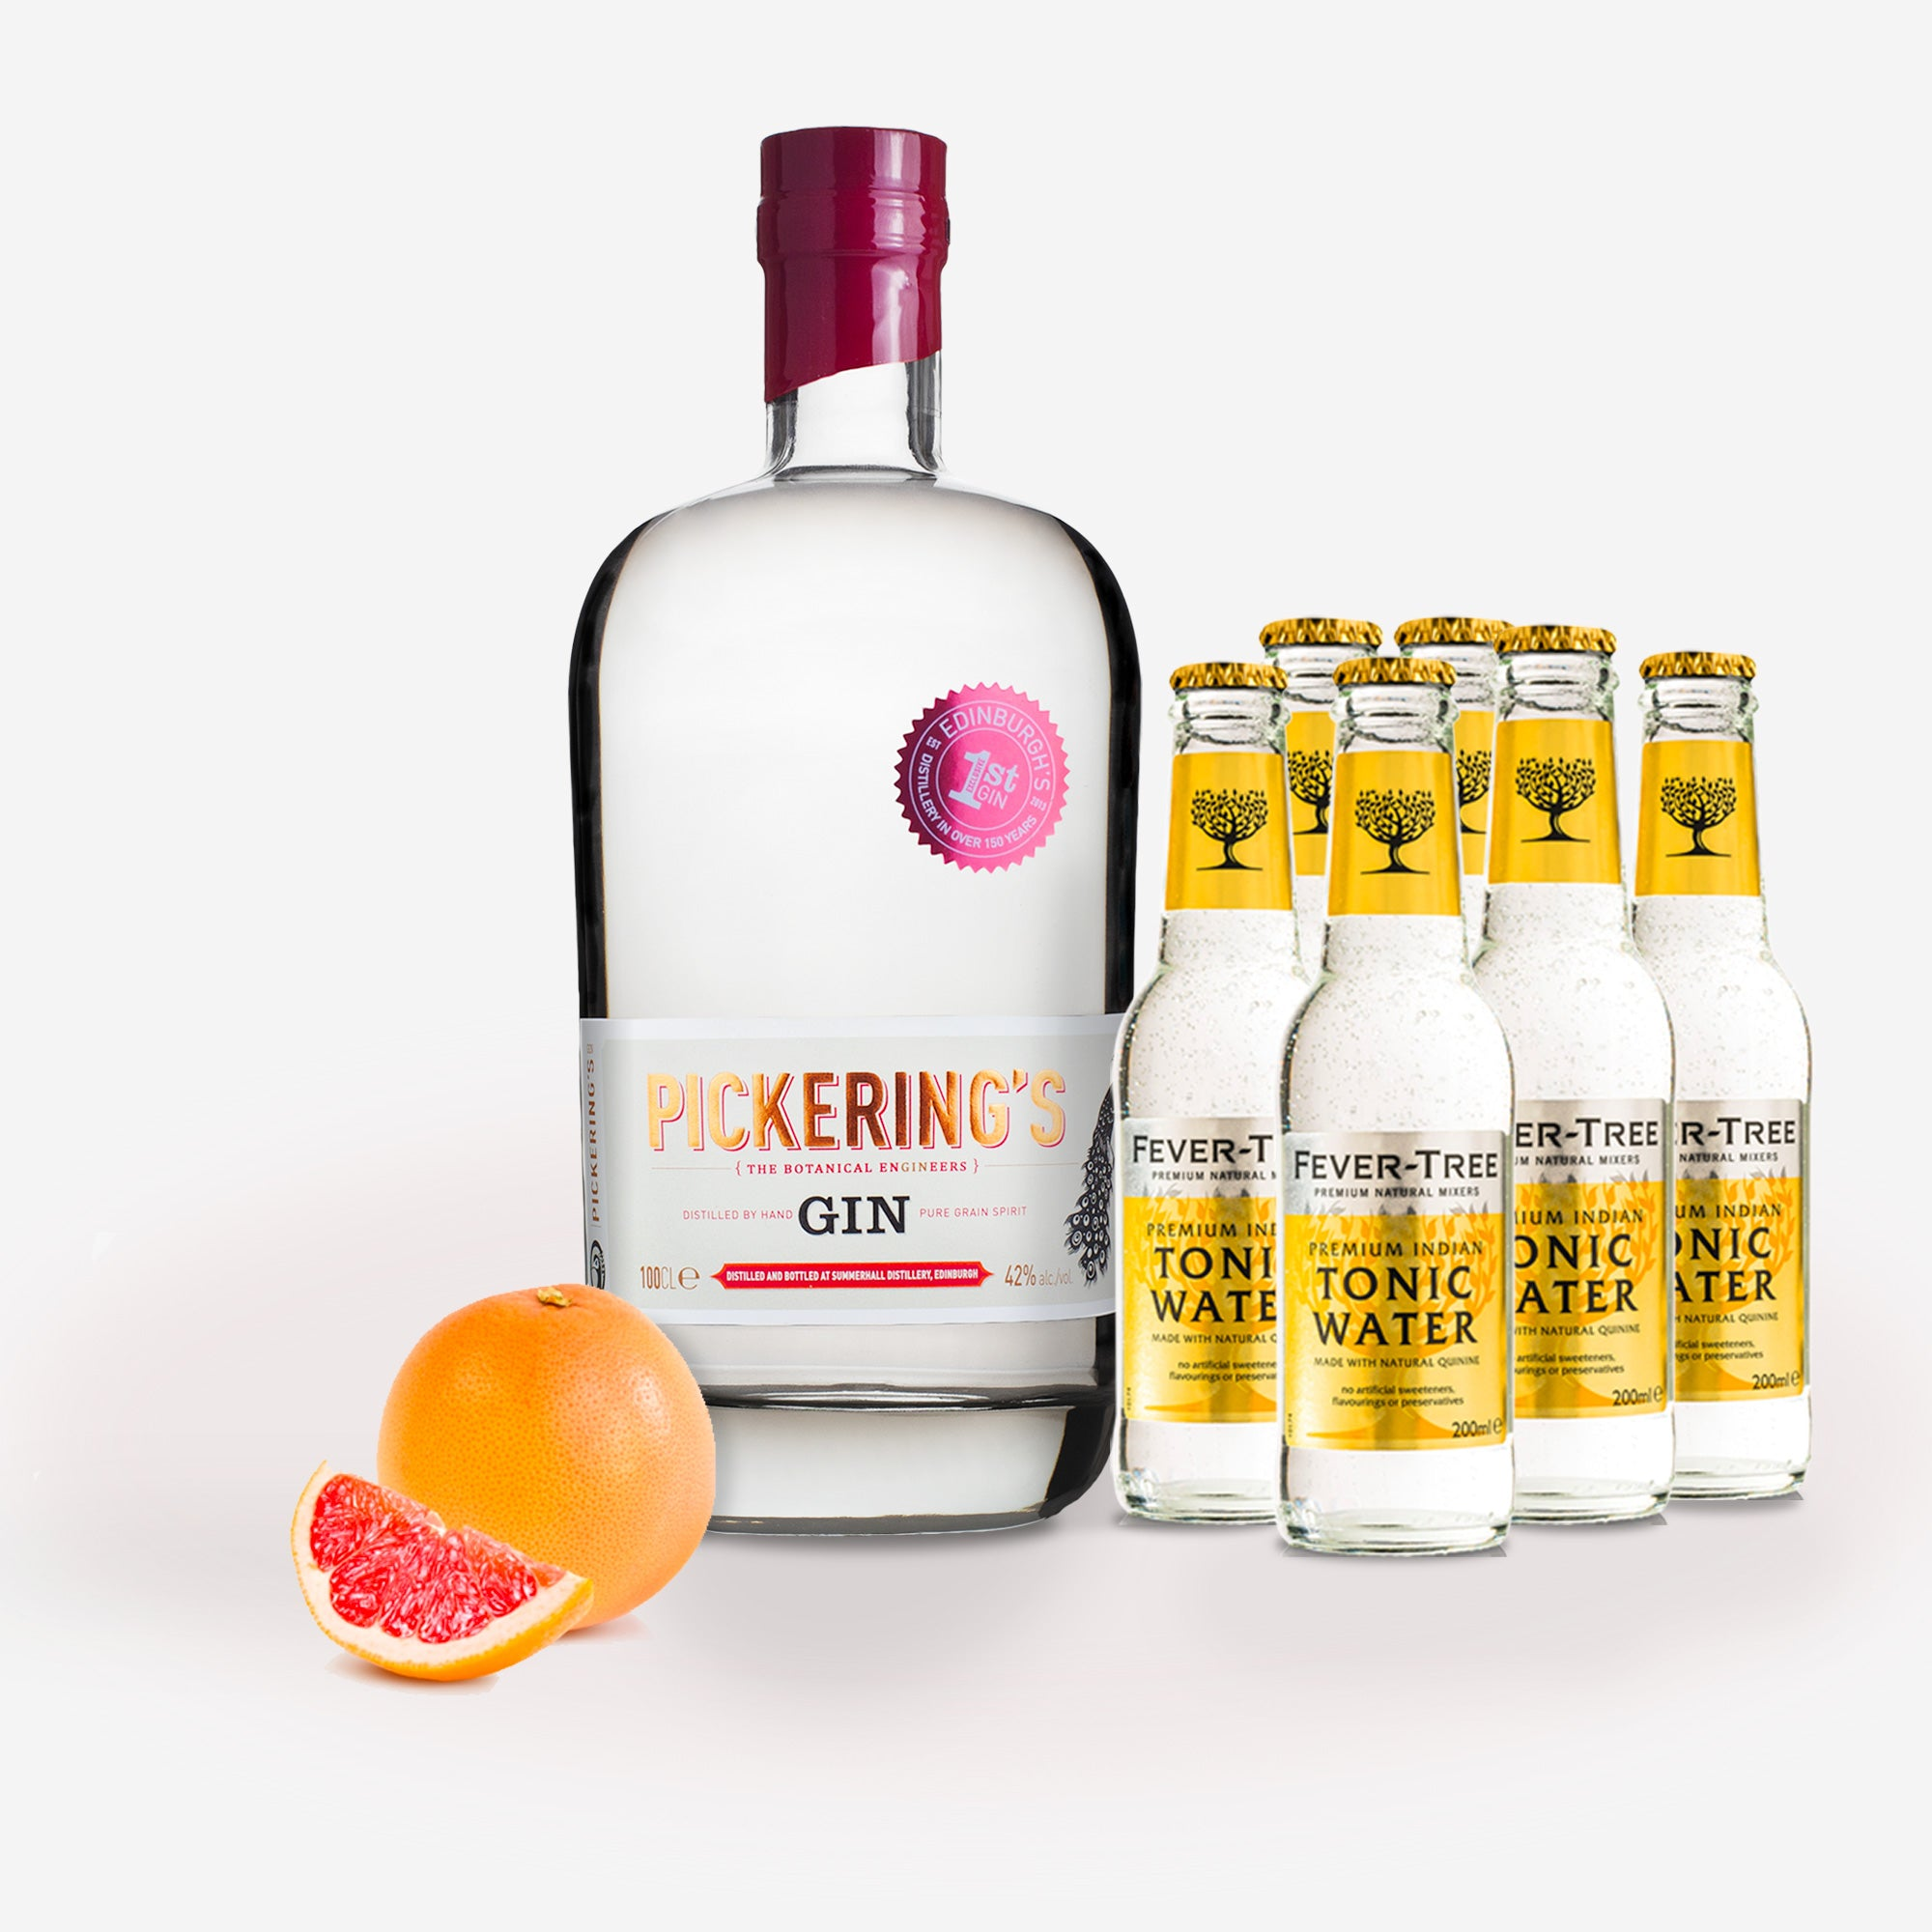 1 Litre Pickering's Gin & Tonic Survival Kit